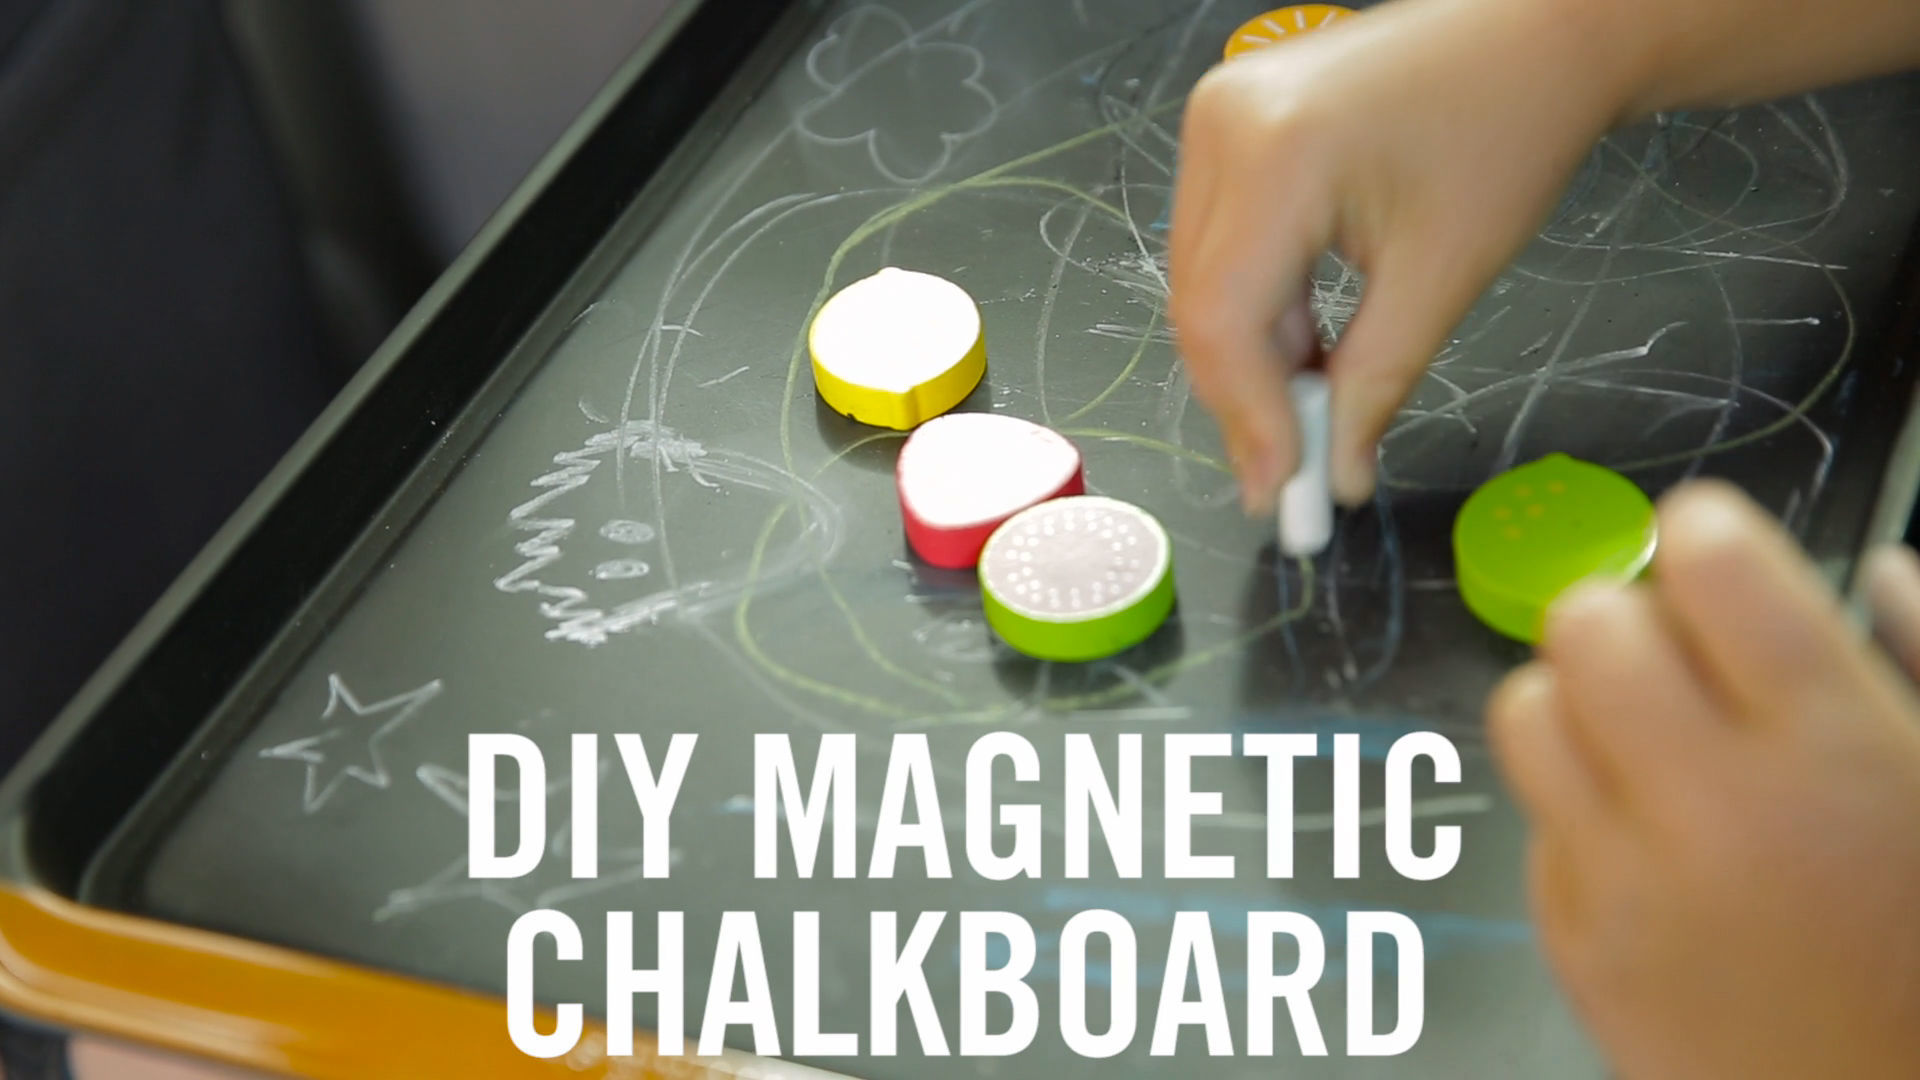 DIY Magnetic Chalkboard | Babble Hacks